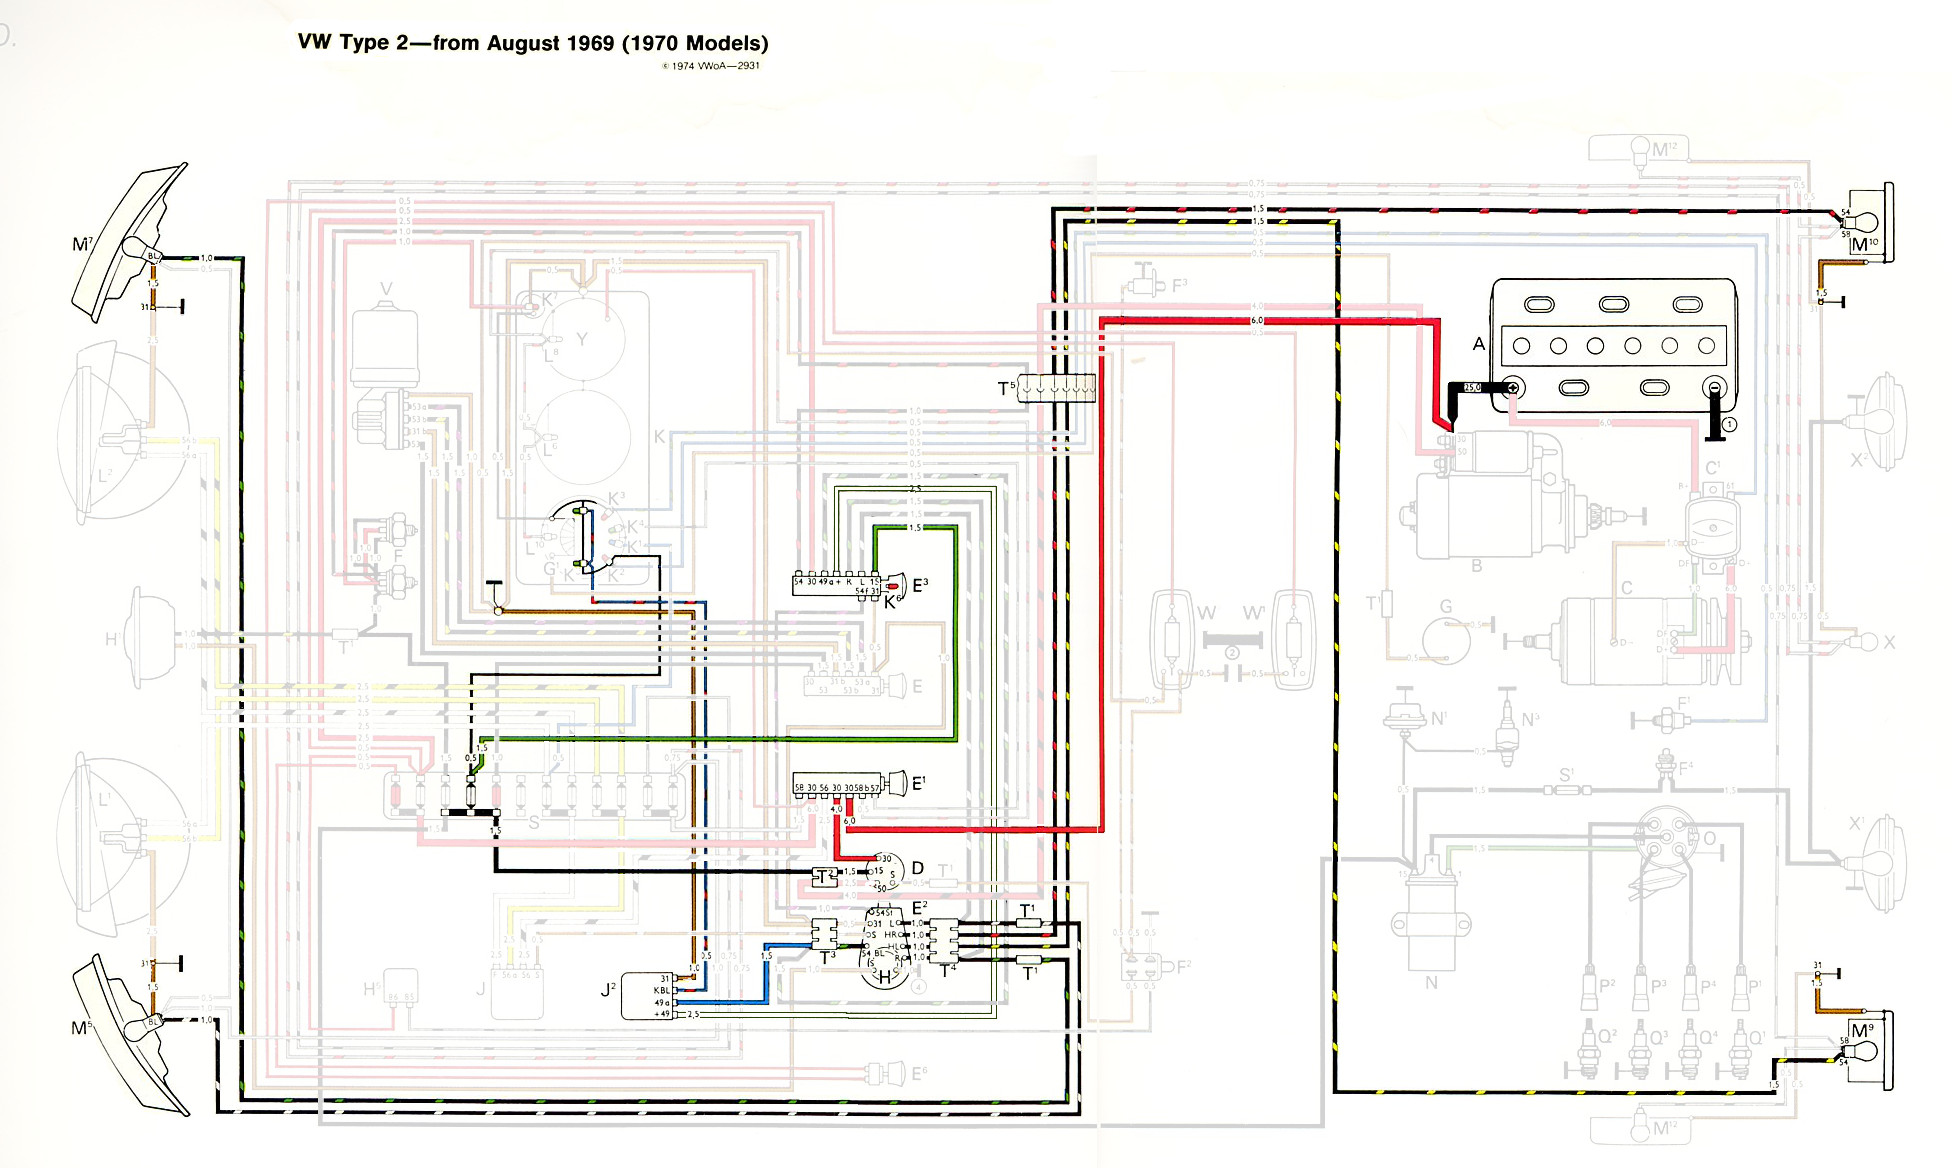 1970bus_signals 1970 vw beetle wiring diagram 1969 vw beetle turn signal wiring 1971 vw bus wiring diagram at love-stories.co